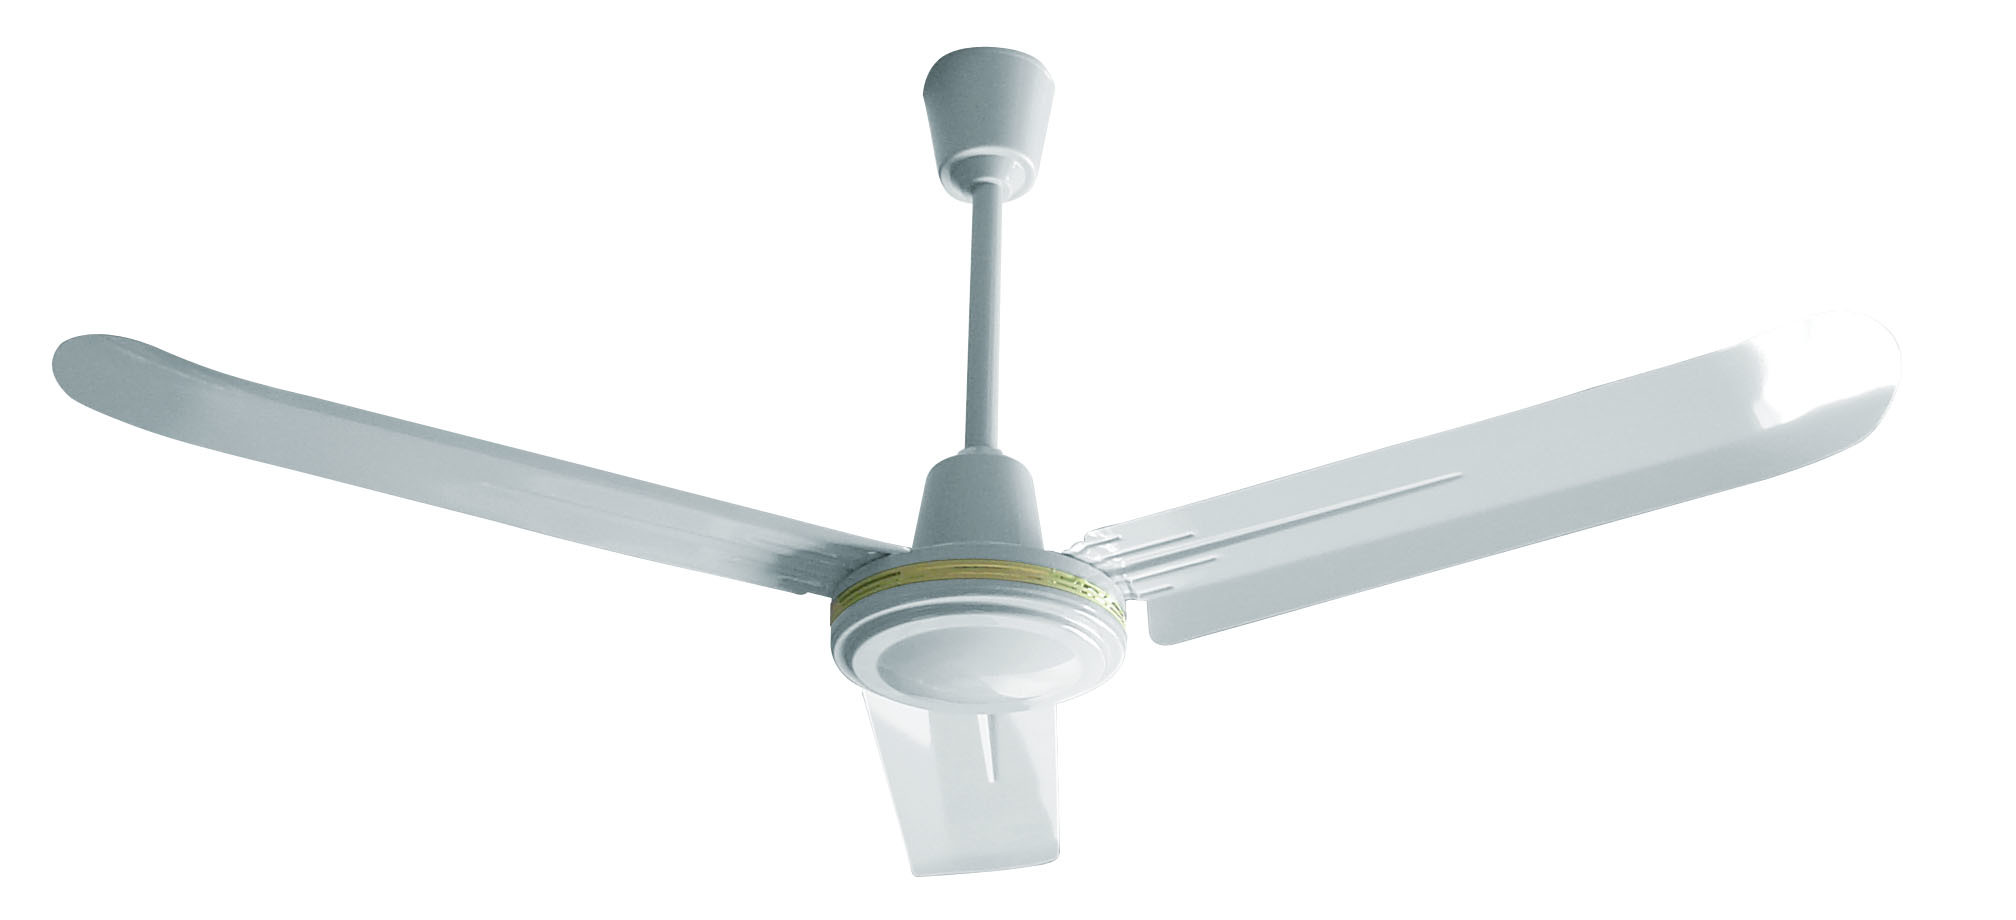 Ceiling fan sizes ceiling systems for Ceiling fan sizes